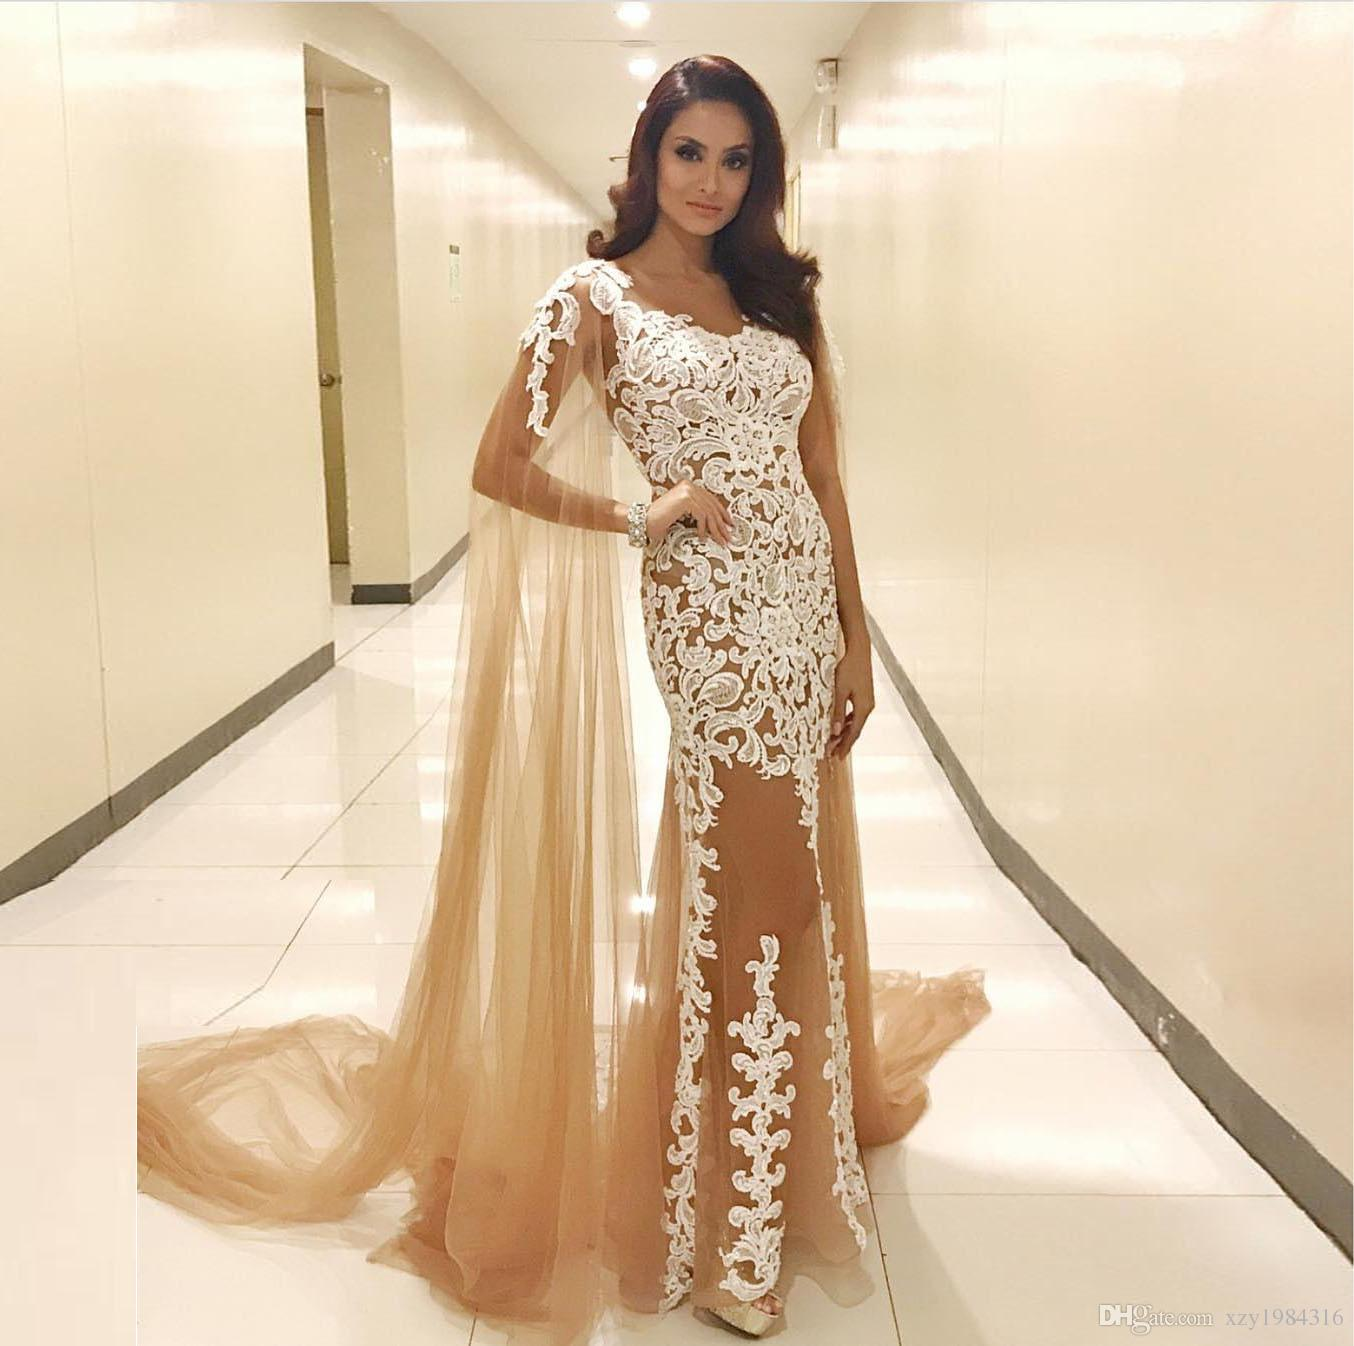 Glamorous Champagne Evening Dresses With Shawl See Through V Neck Lace  Appliques Tulle Prom Dress Sexy Mermaid Long Evening Party Gowns Le Chateau  Prom ... f7cb61f11